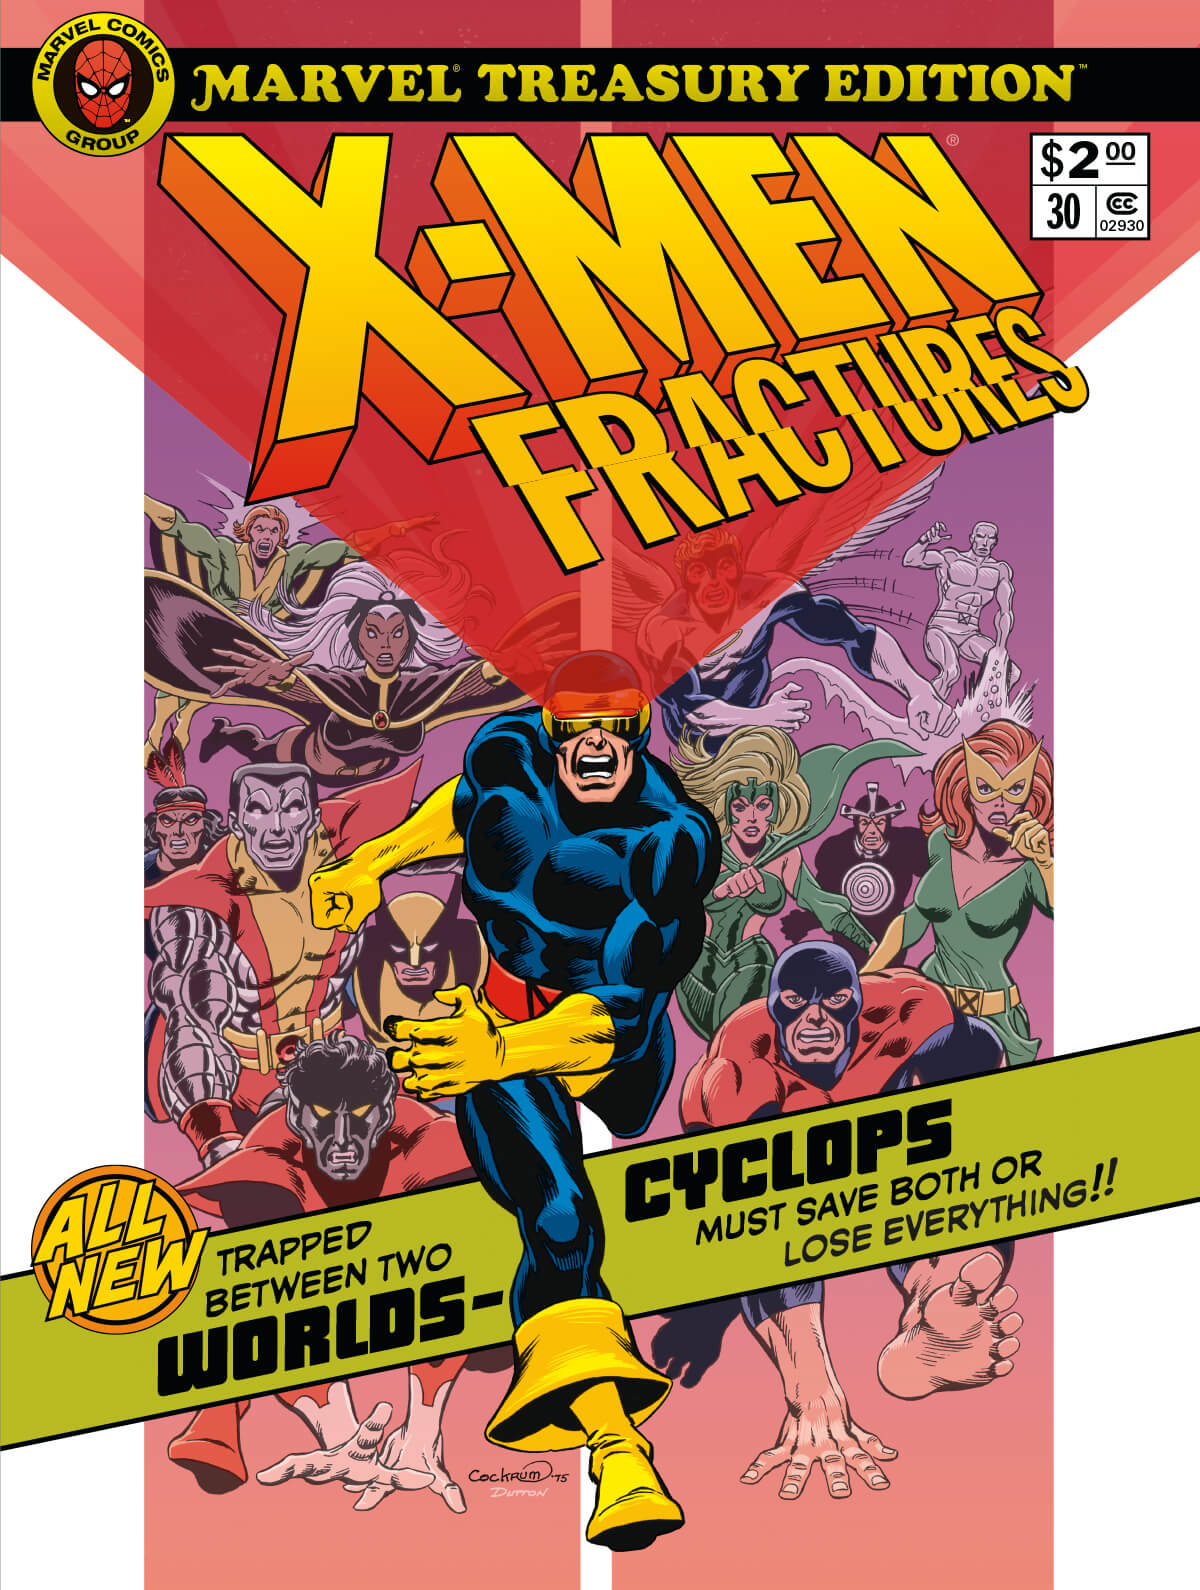 Marvel Treasury Edition 30 X-Men Fractures